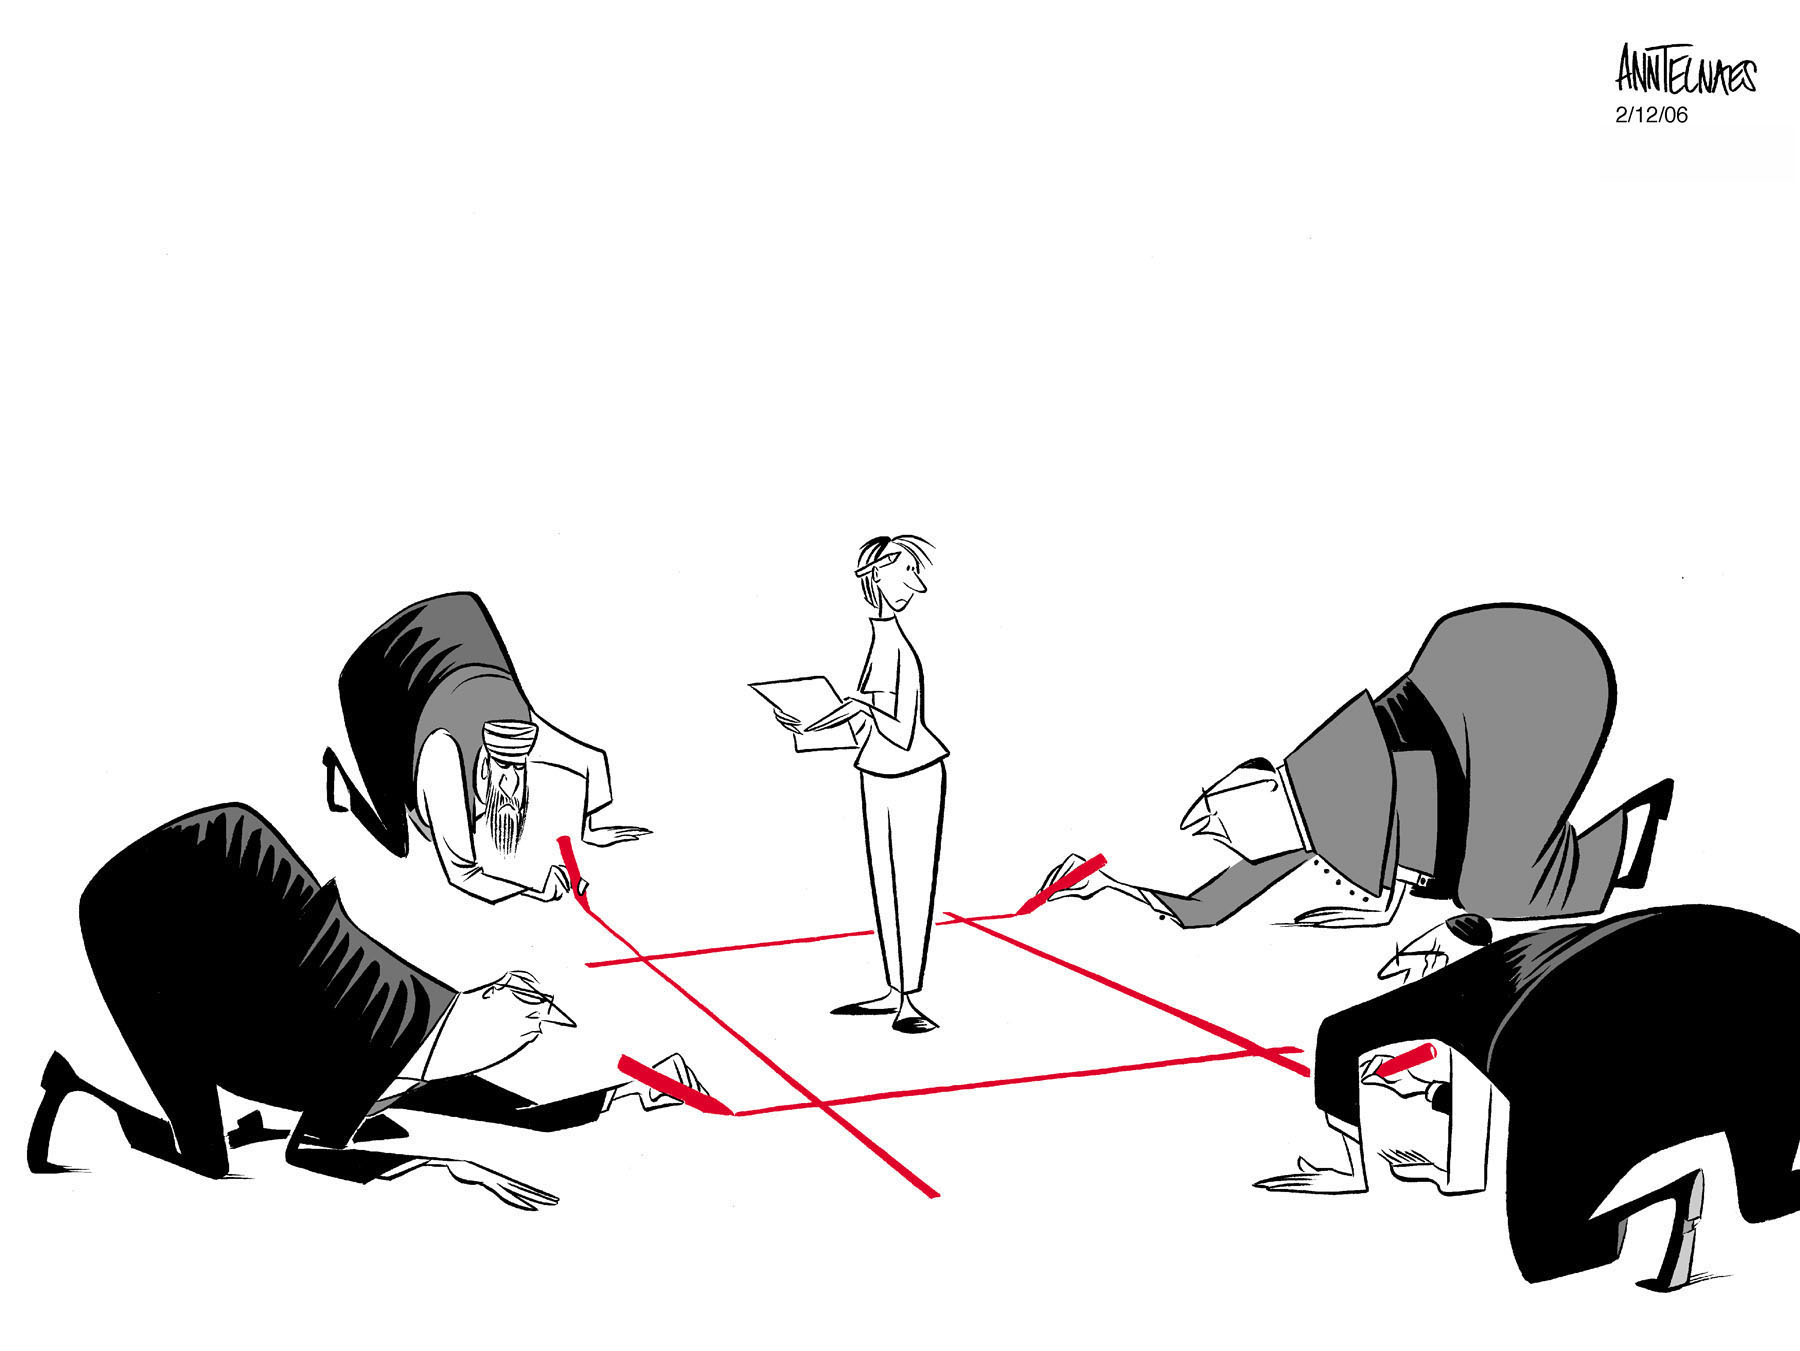 Drawing a line in the Danish Cartoon Controversy